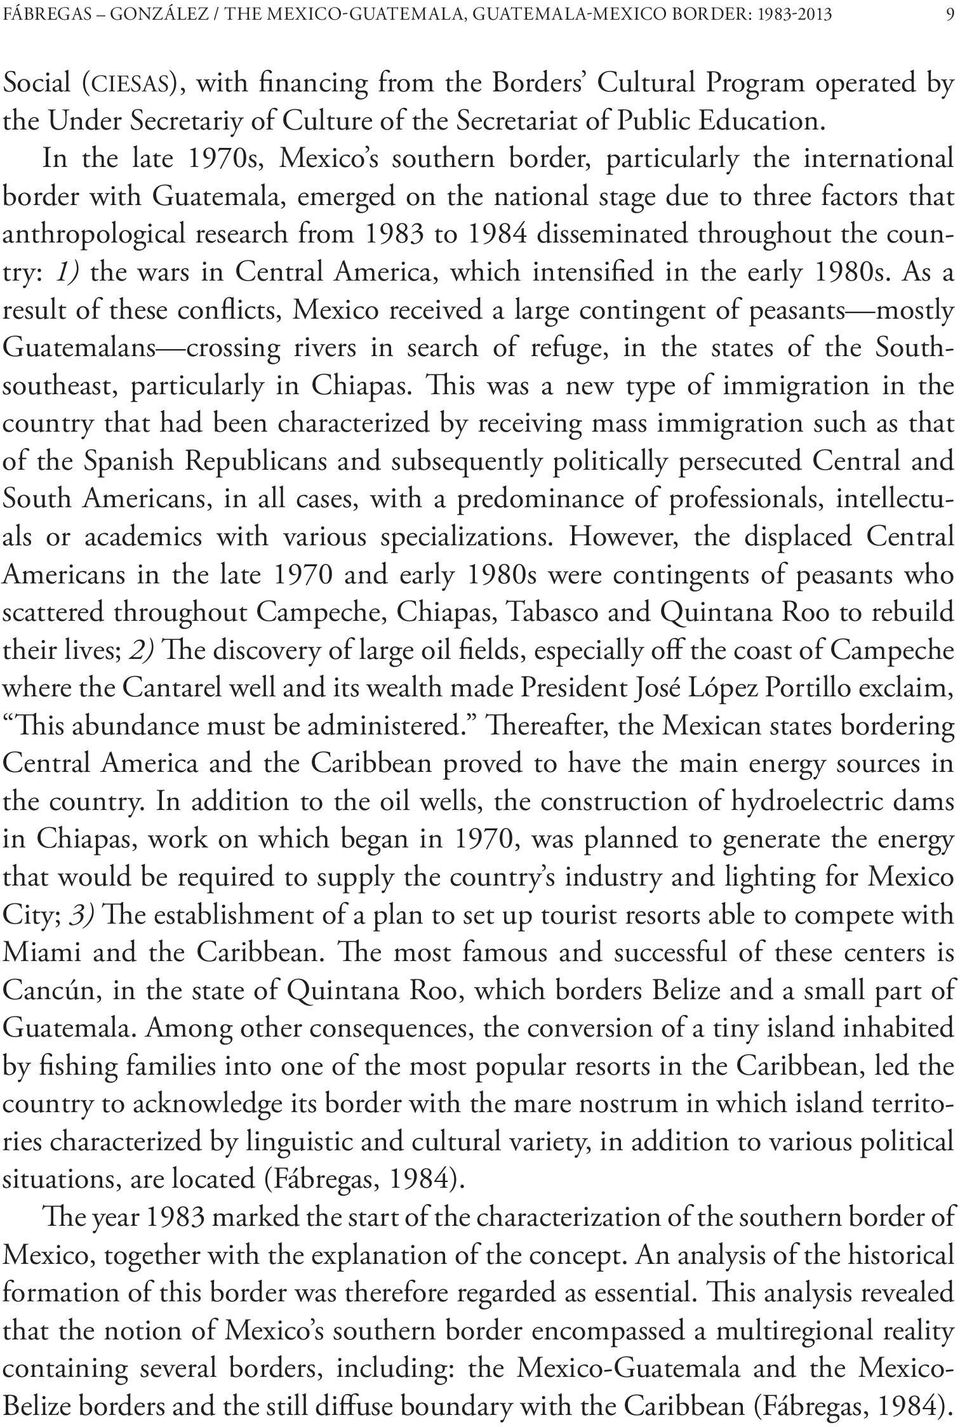 In the late 1970s, Mexico s southern border, particularly the international border with Guatemala, emerged on the national stage due to three factors that anthropological research from 1983 to 1984